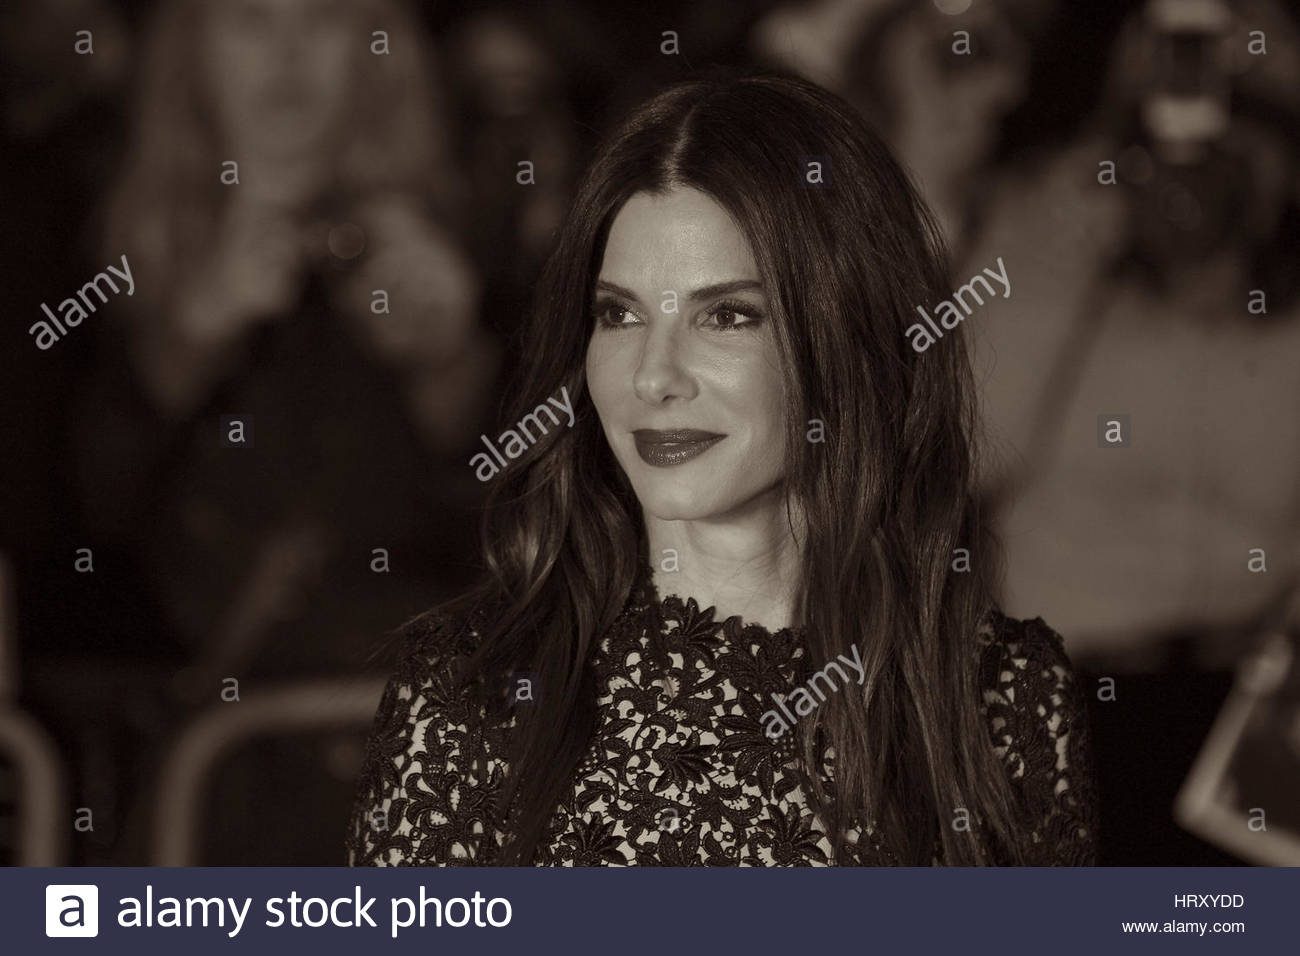 London, UK, 10th October 2013. Sandra Bullock ( Image digitally altered to sepia effect ) attends  the gala screening - Stock Image